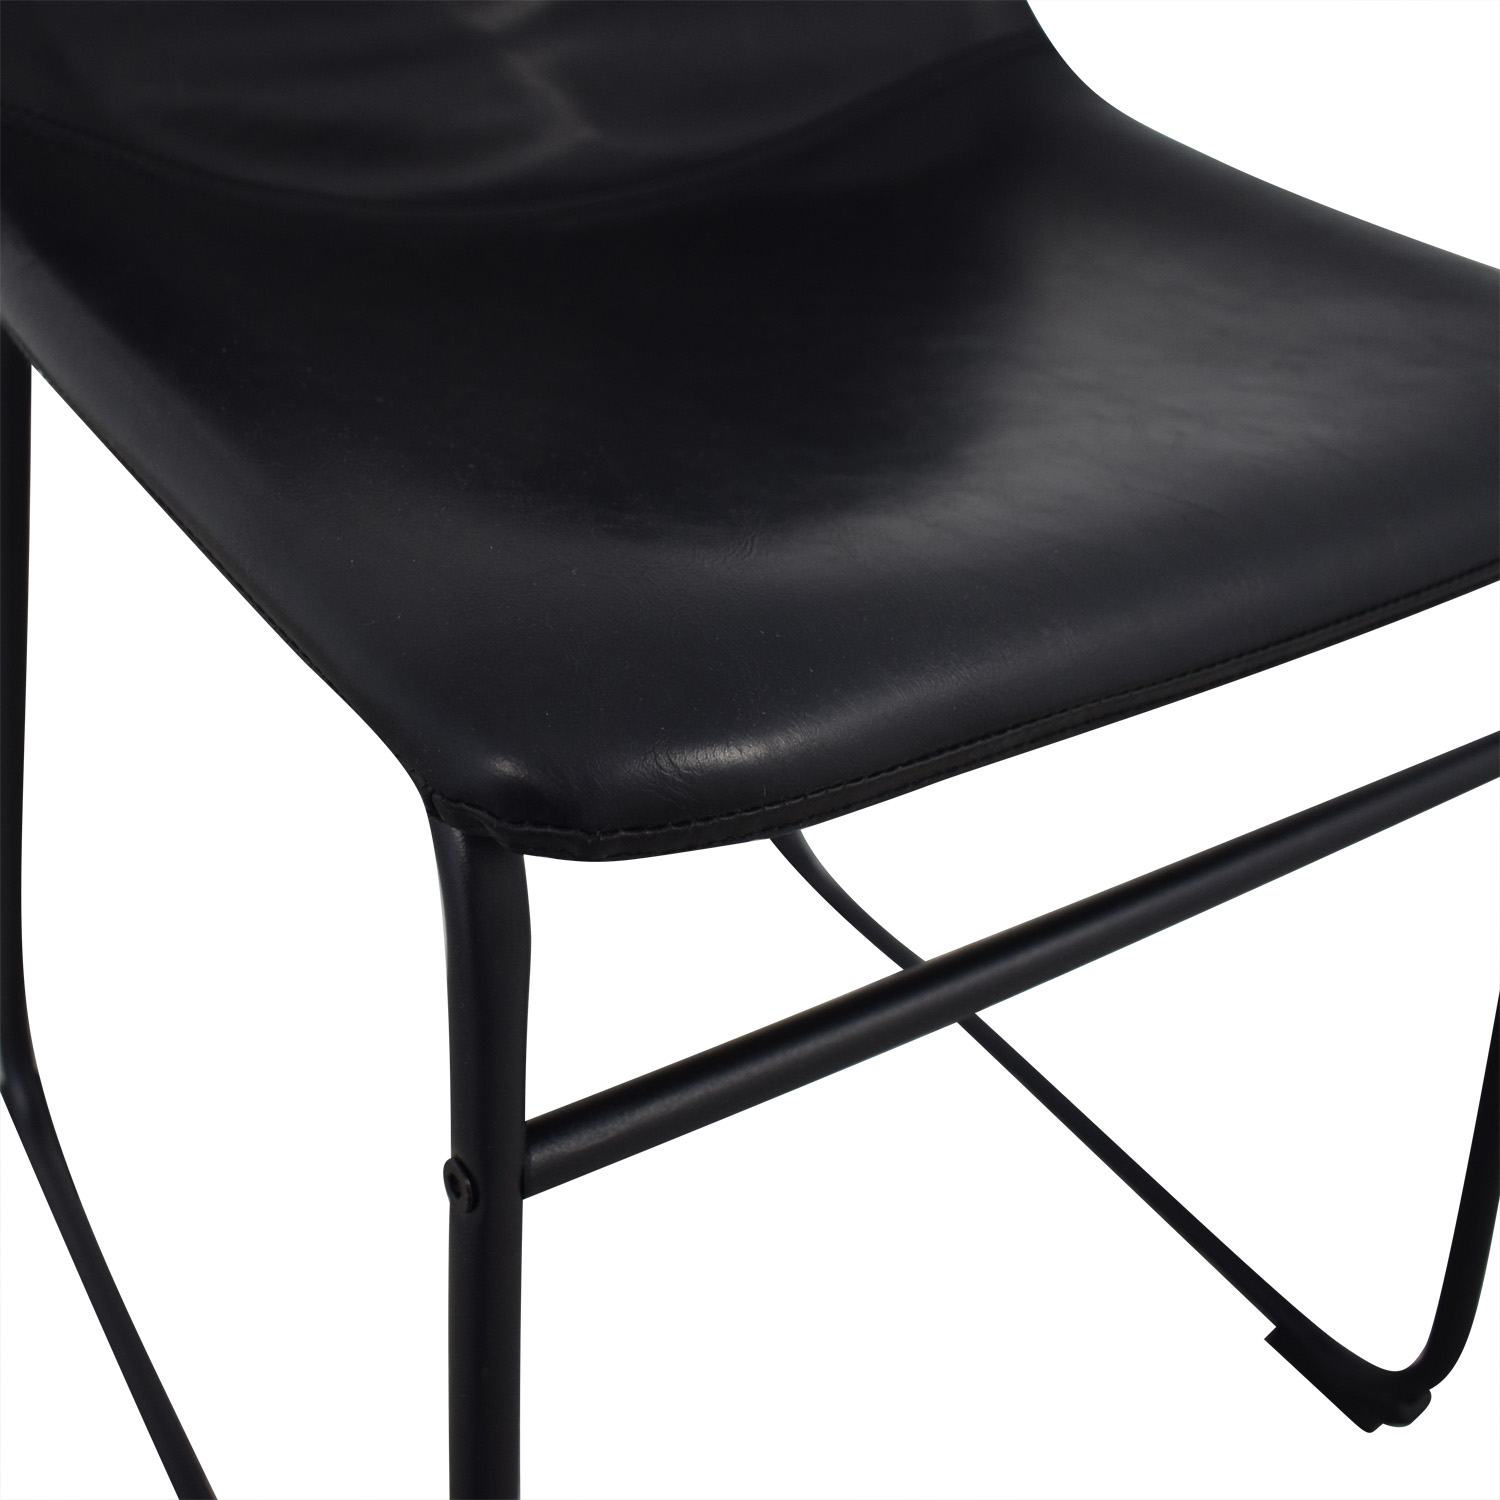 Walker Edison Walker Edison Industrial Faux Leather Dining Chair price